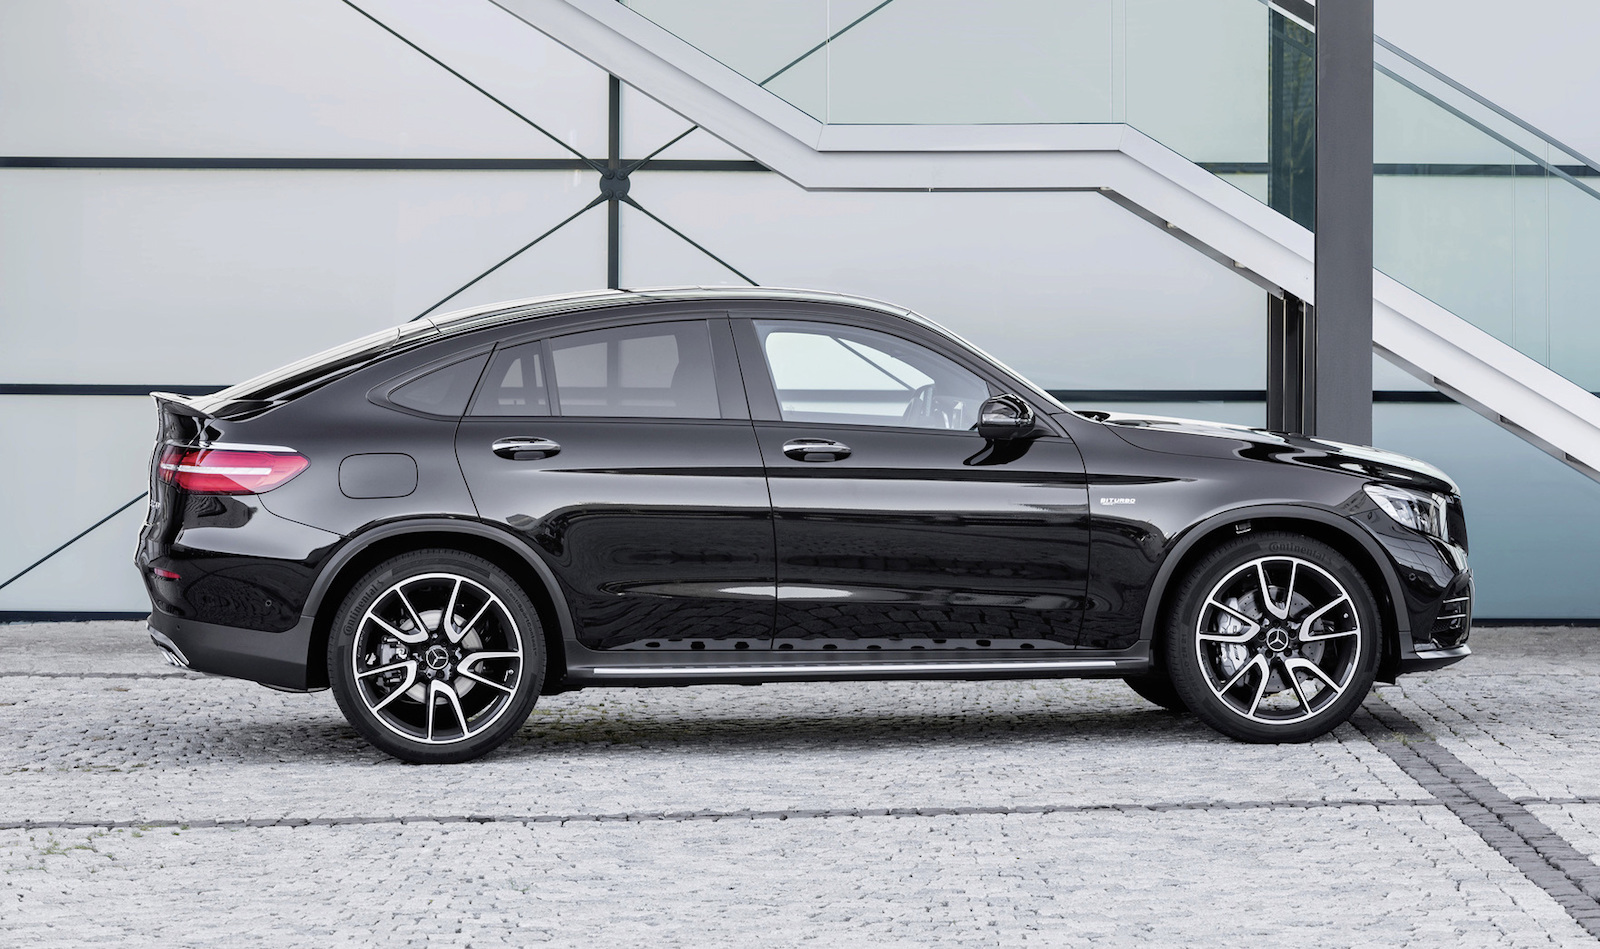 Opel Jeep 2017 >> Mercedes-AMG GLC 43 Coupe revealed, 270kW turbo | PerformanceDrive